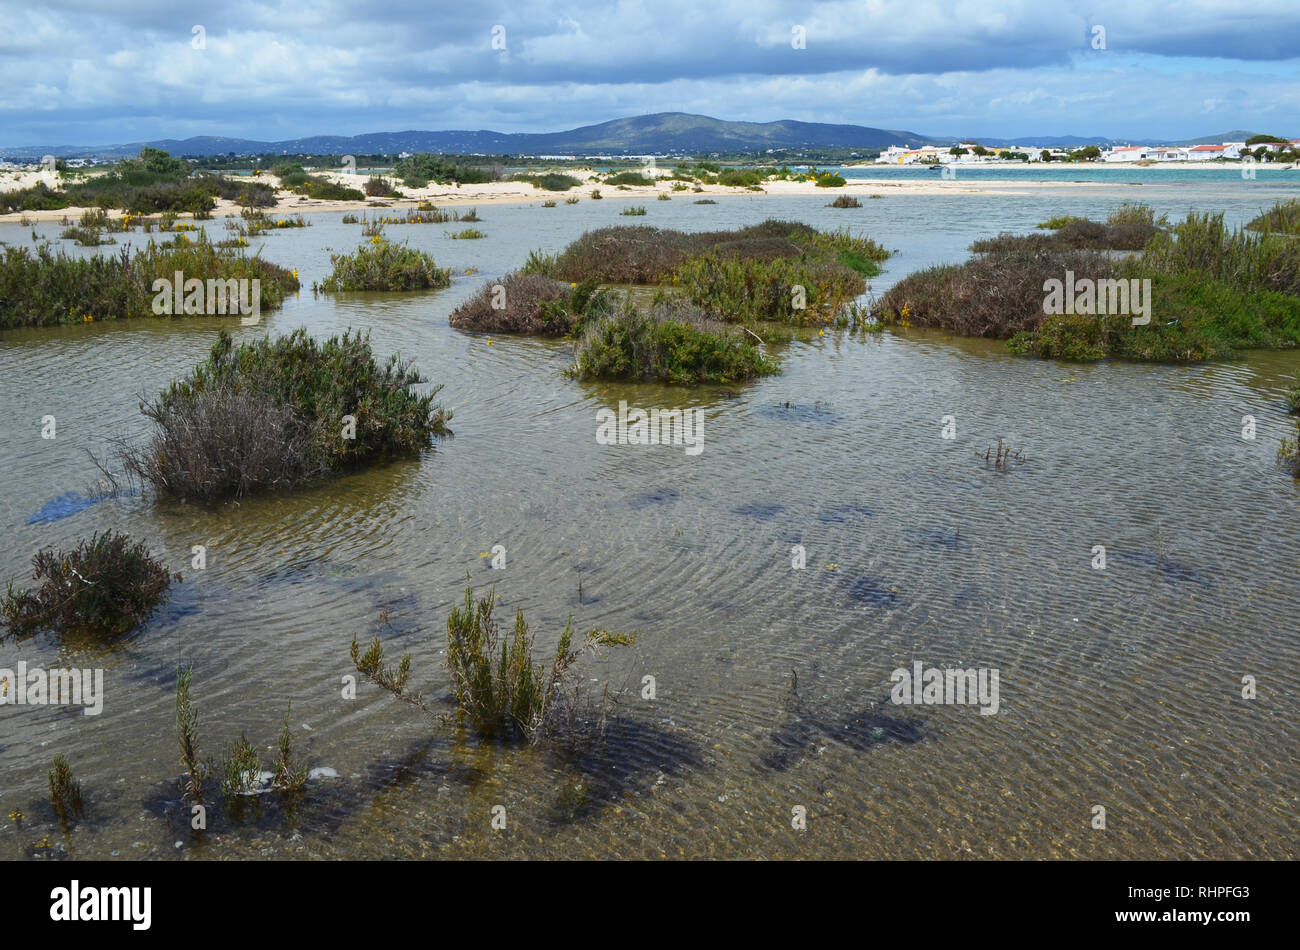 Salt marshes in Armona island, part of the Ria Formosa Natural Park in the Algarve region of southwestern Portugal Stock Photo